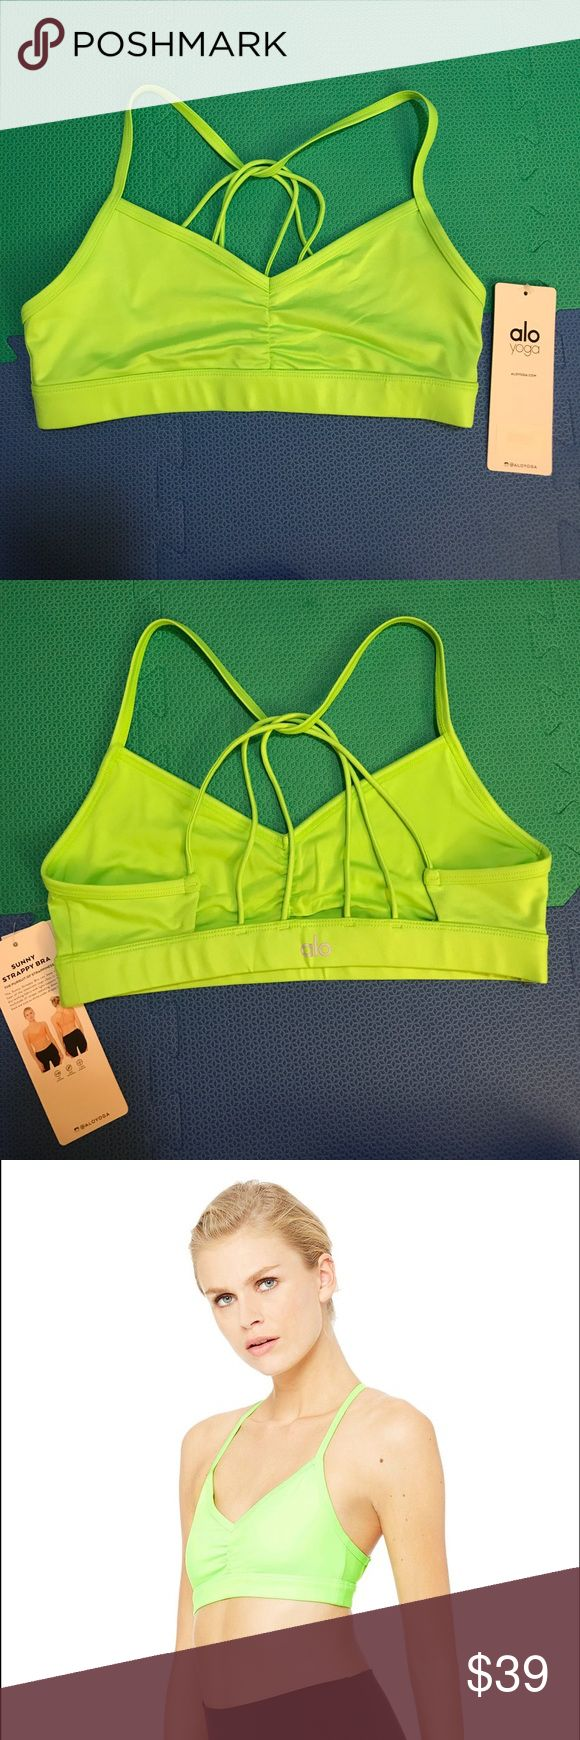 Alo yoga sunny strappy bra (glow stick Glossy) Brand new (NWT) alo yoga sunny Strappy Bra, never worn. Beautiful light green (looks so much more vibrant and pretty in person, the picture doesn't do it justice!) ALO Yoga Intimates & Sleepwear Bras